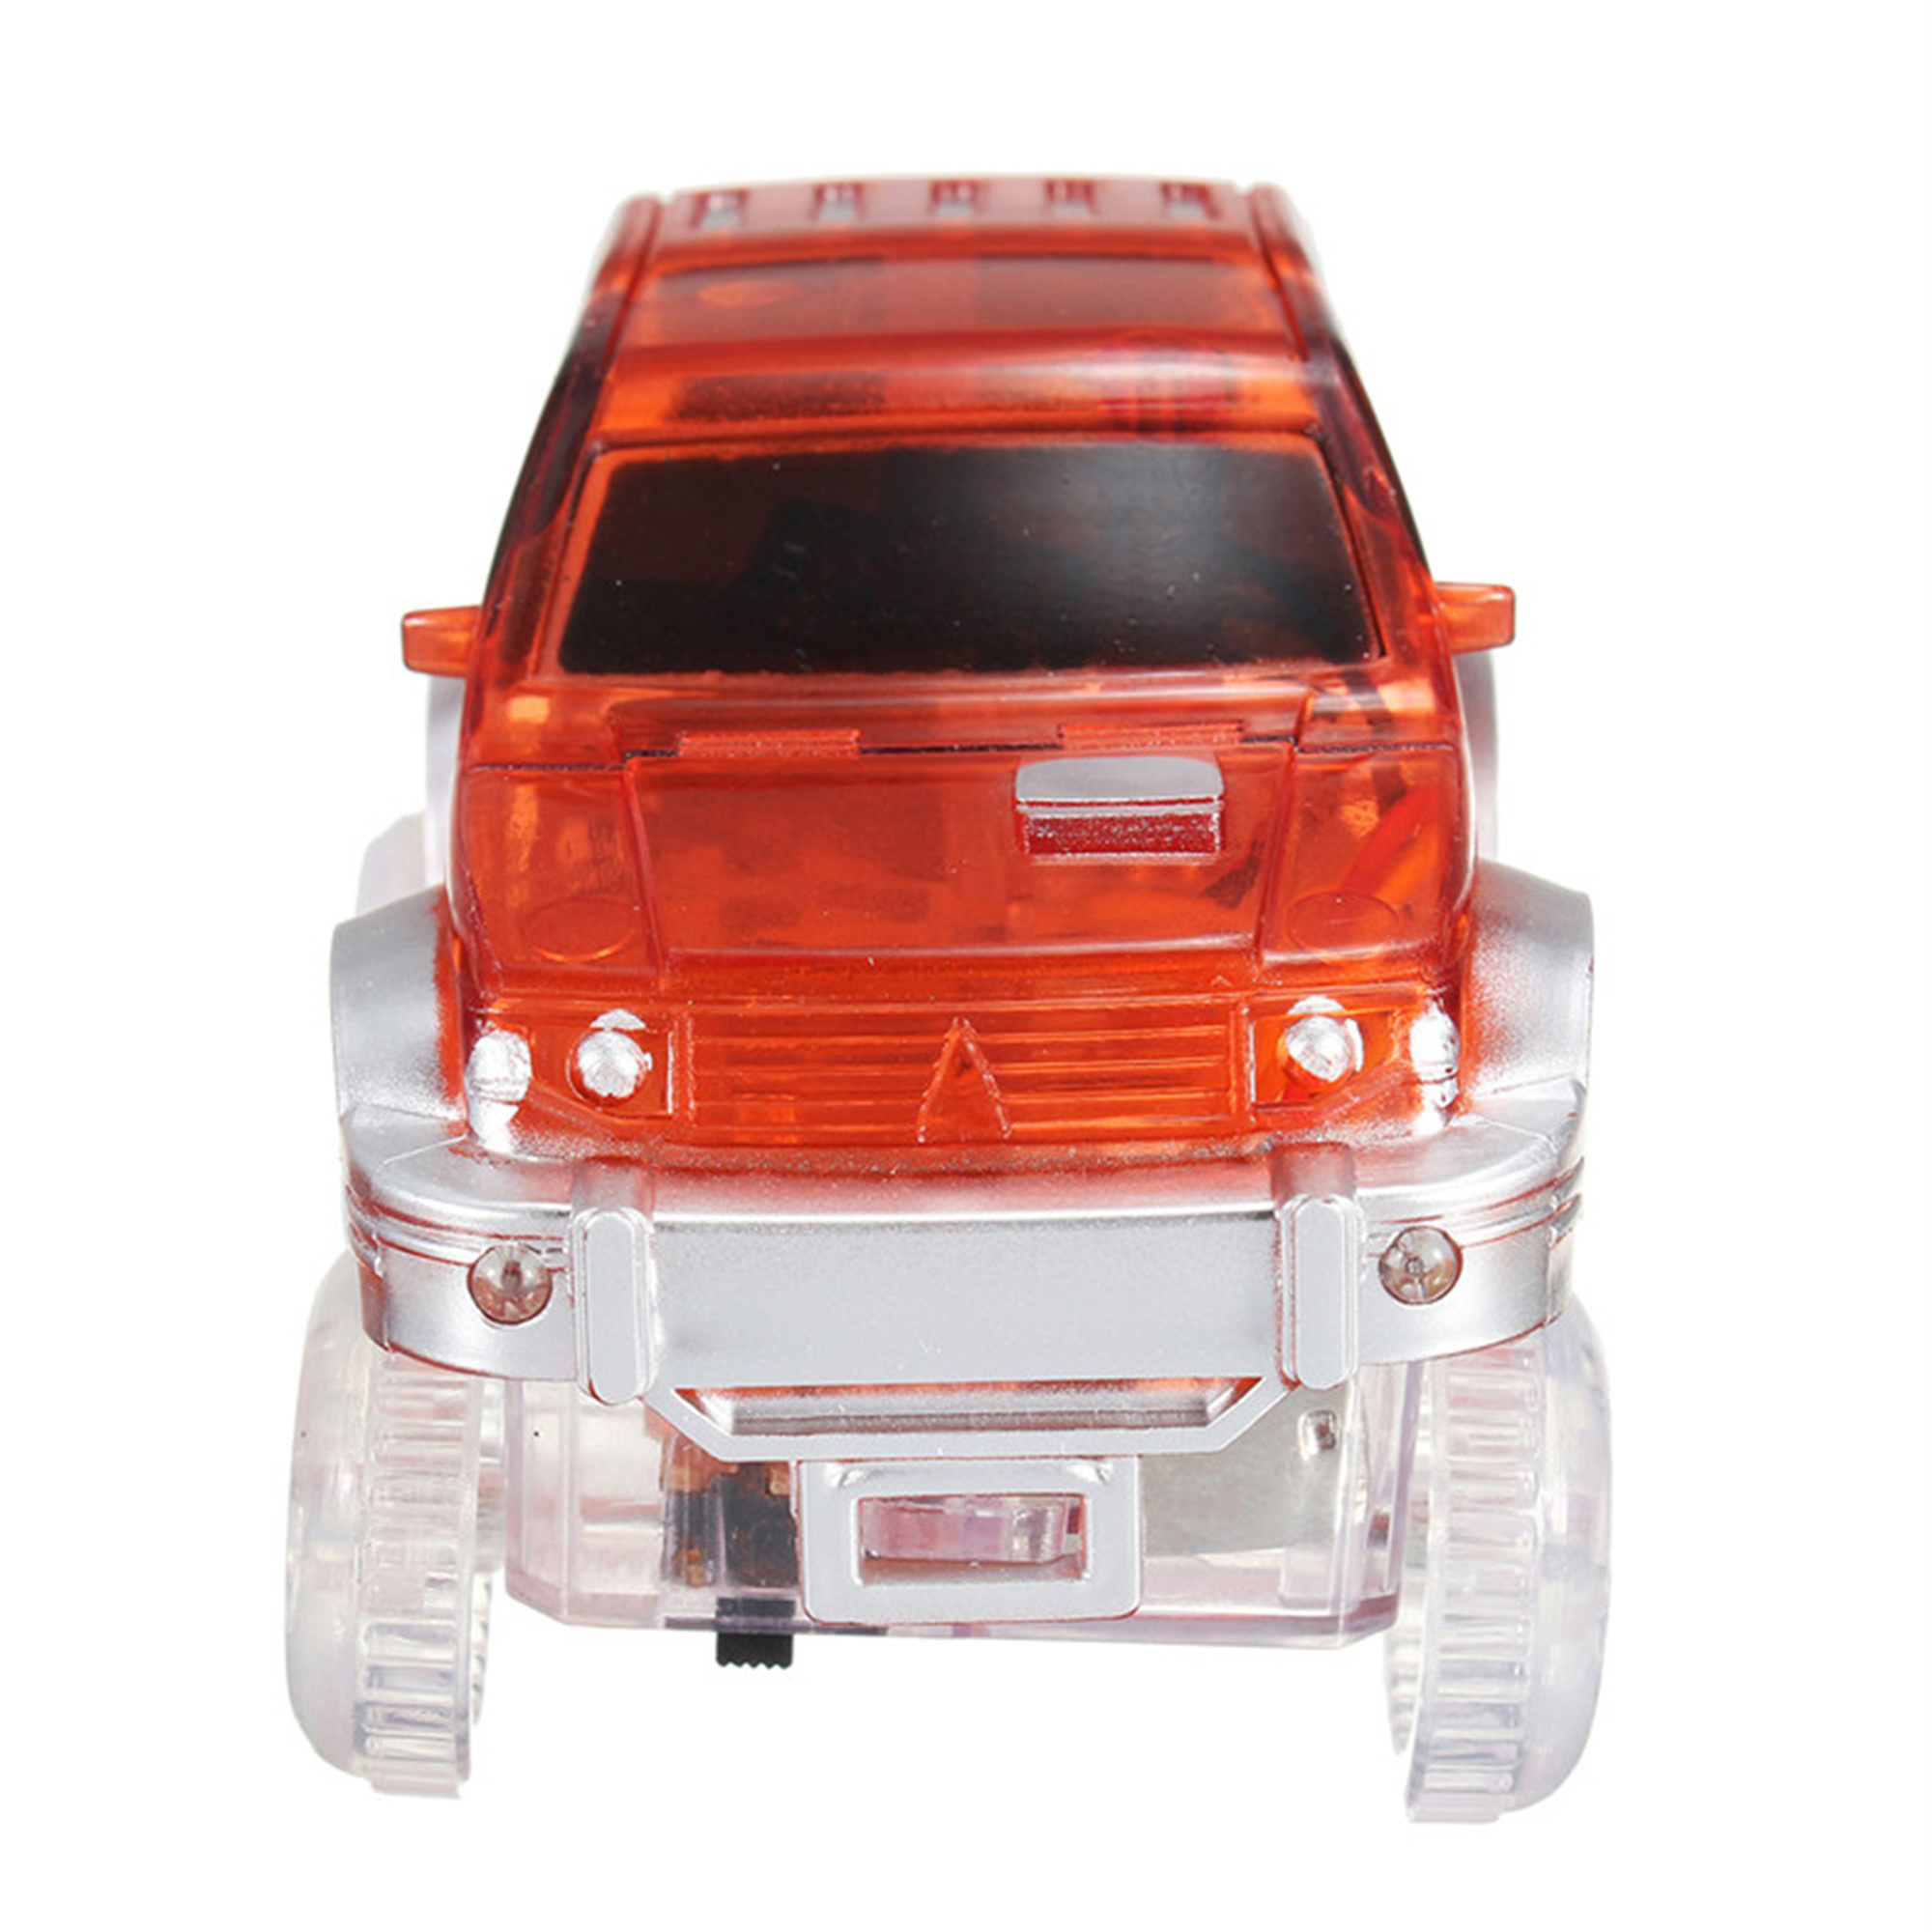 Kids Toy 3pcs Car Track Toy with 5 LED Lights Glow in the Dark Light Up Cars